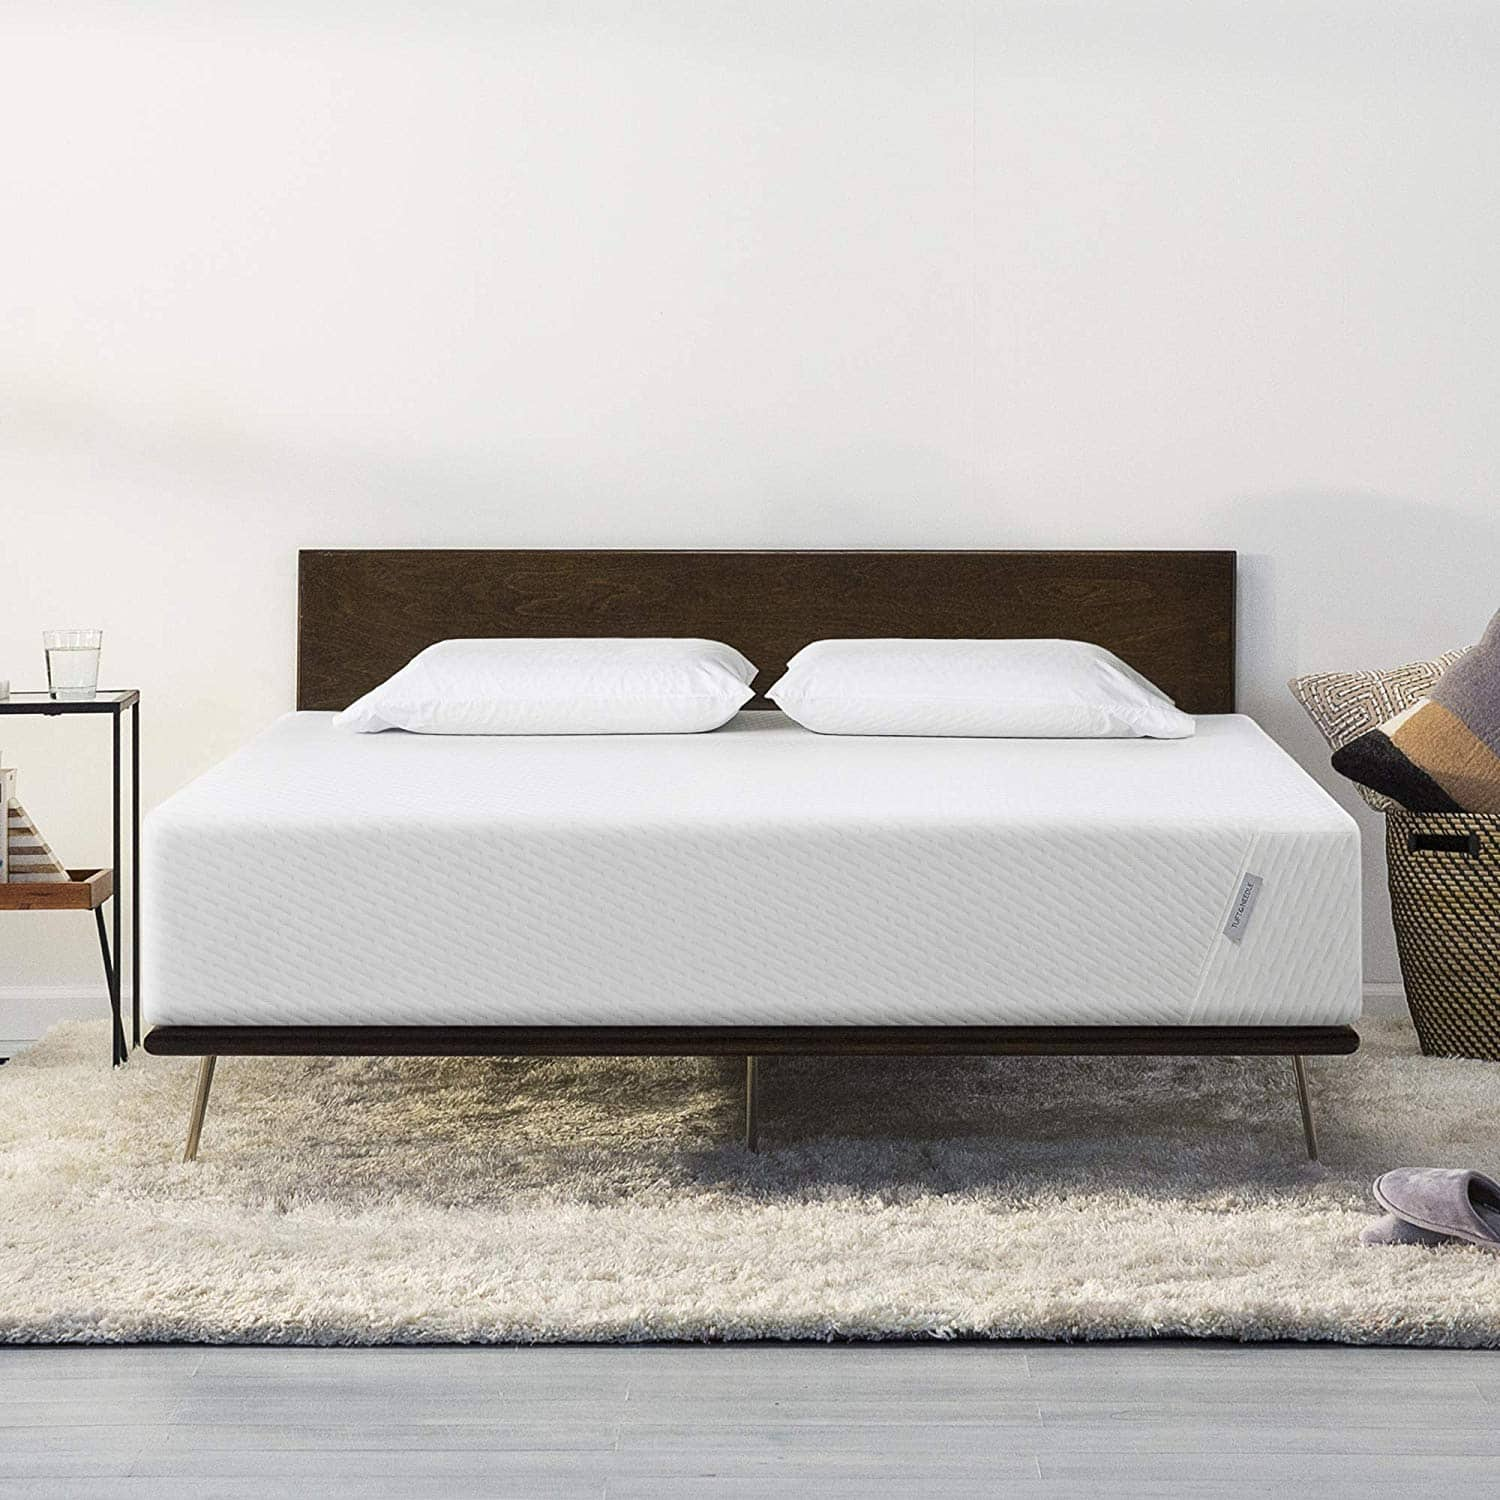 Tuft & Needle Mattress 10% Off Sale from $315 Twin